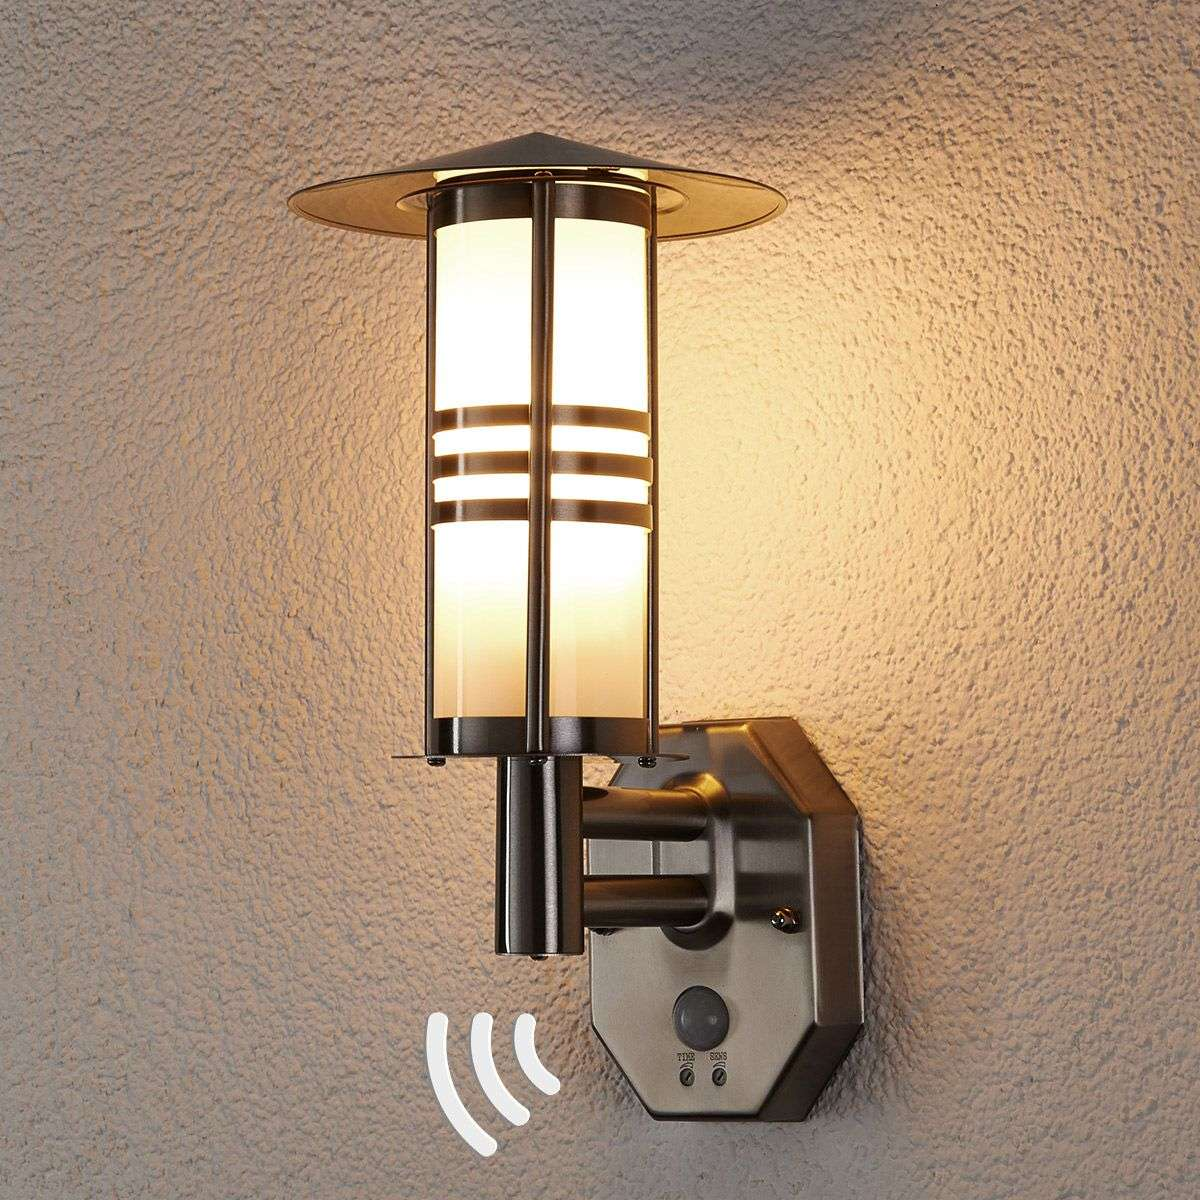 Erina motion detector outdoor wall lamp lights erina motion detector outdoor wall lamp 9960014 31 aloadofball Images